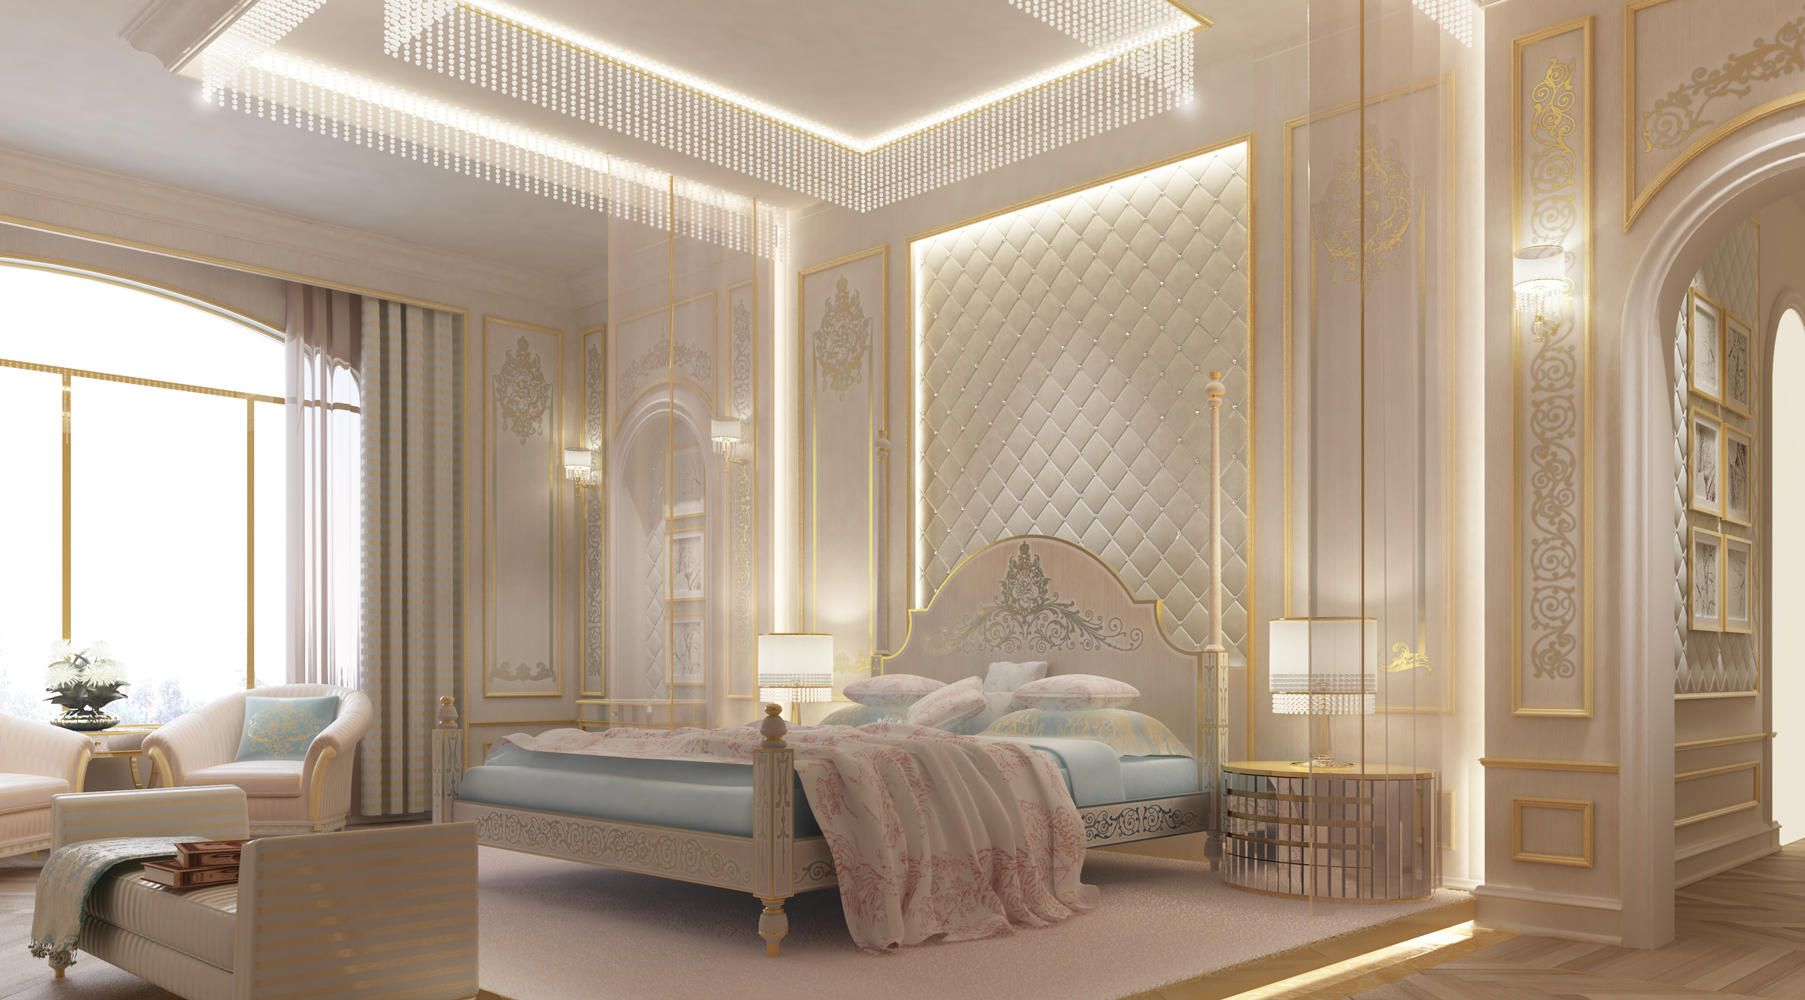 Dubai bedroom bedroom design abu dhabi d for House interior design romantic bedroom